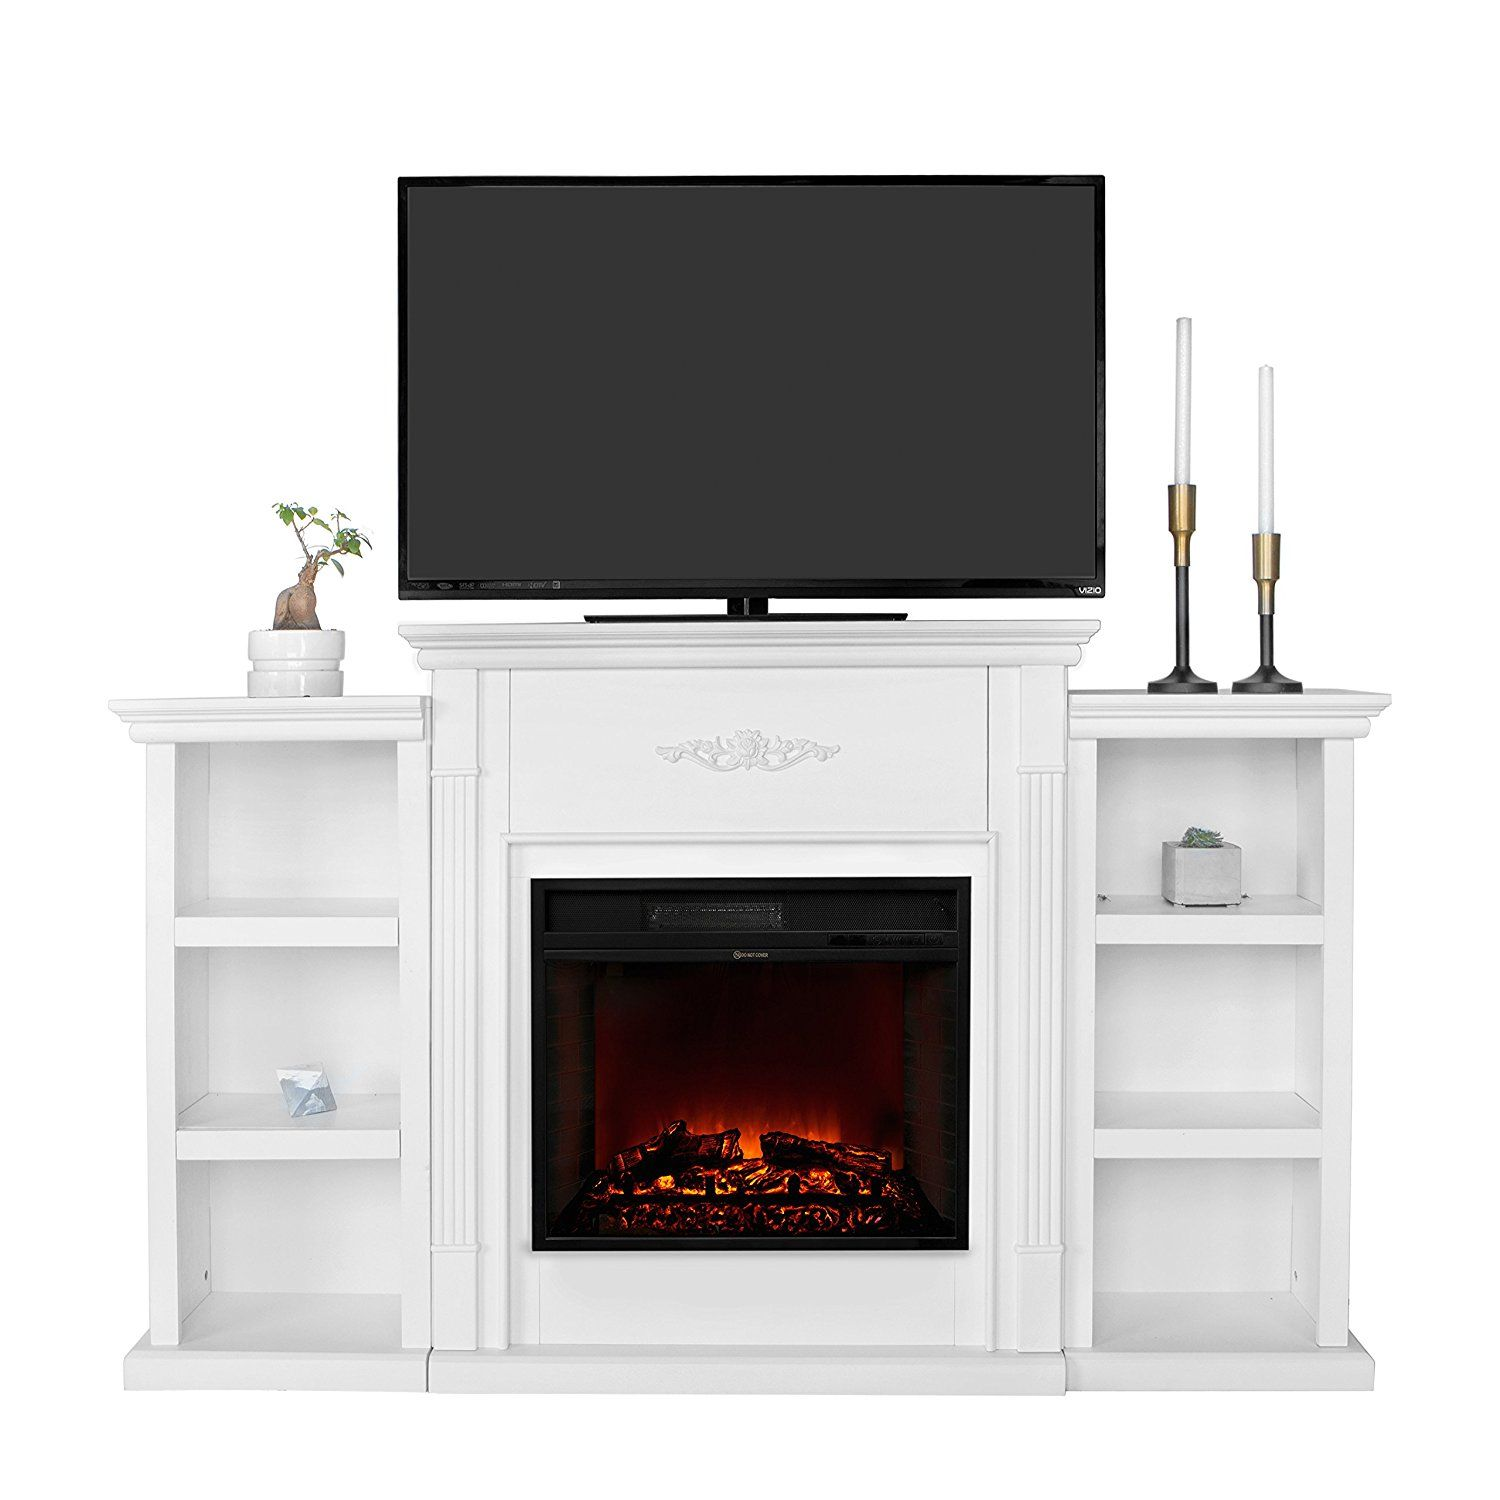 Xtremepowerus electric portable fireplace w tv stand bookcases